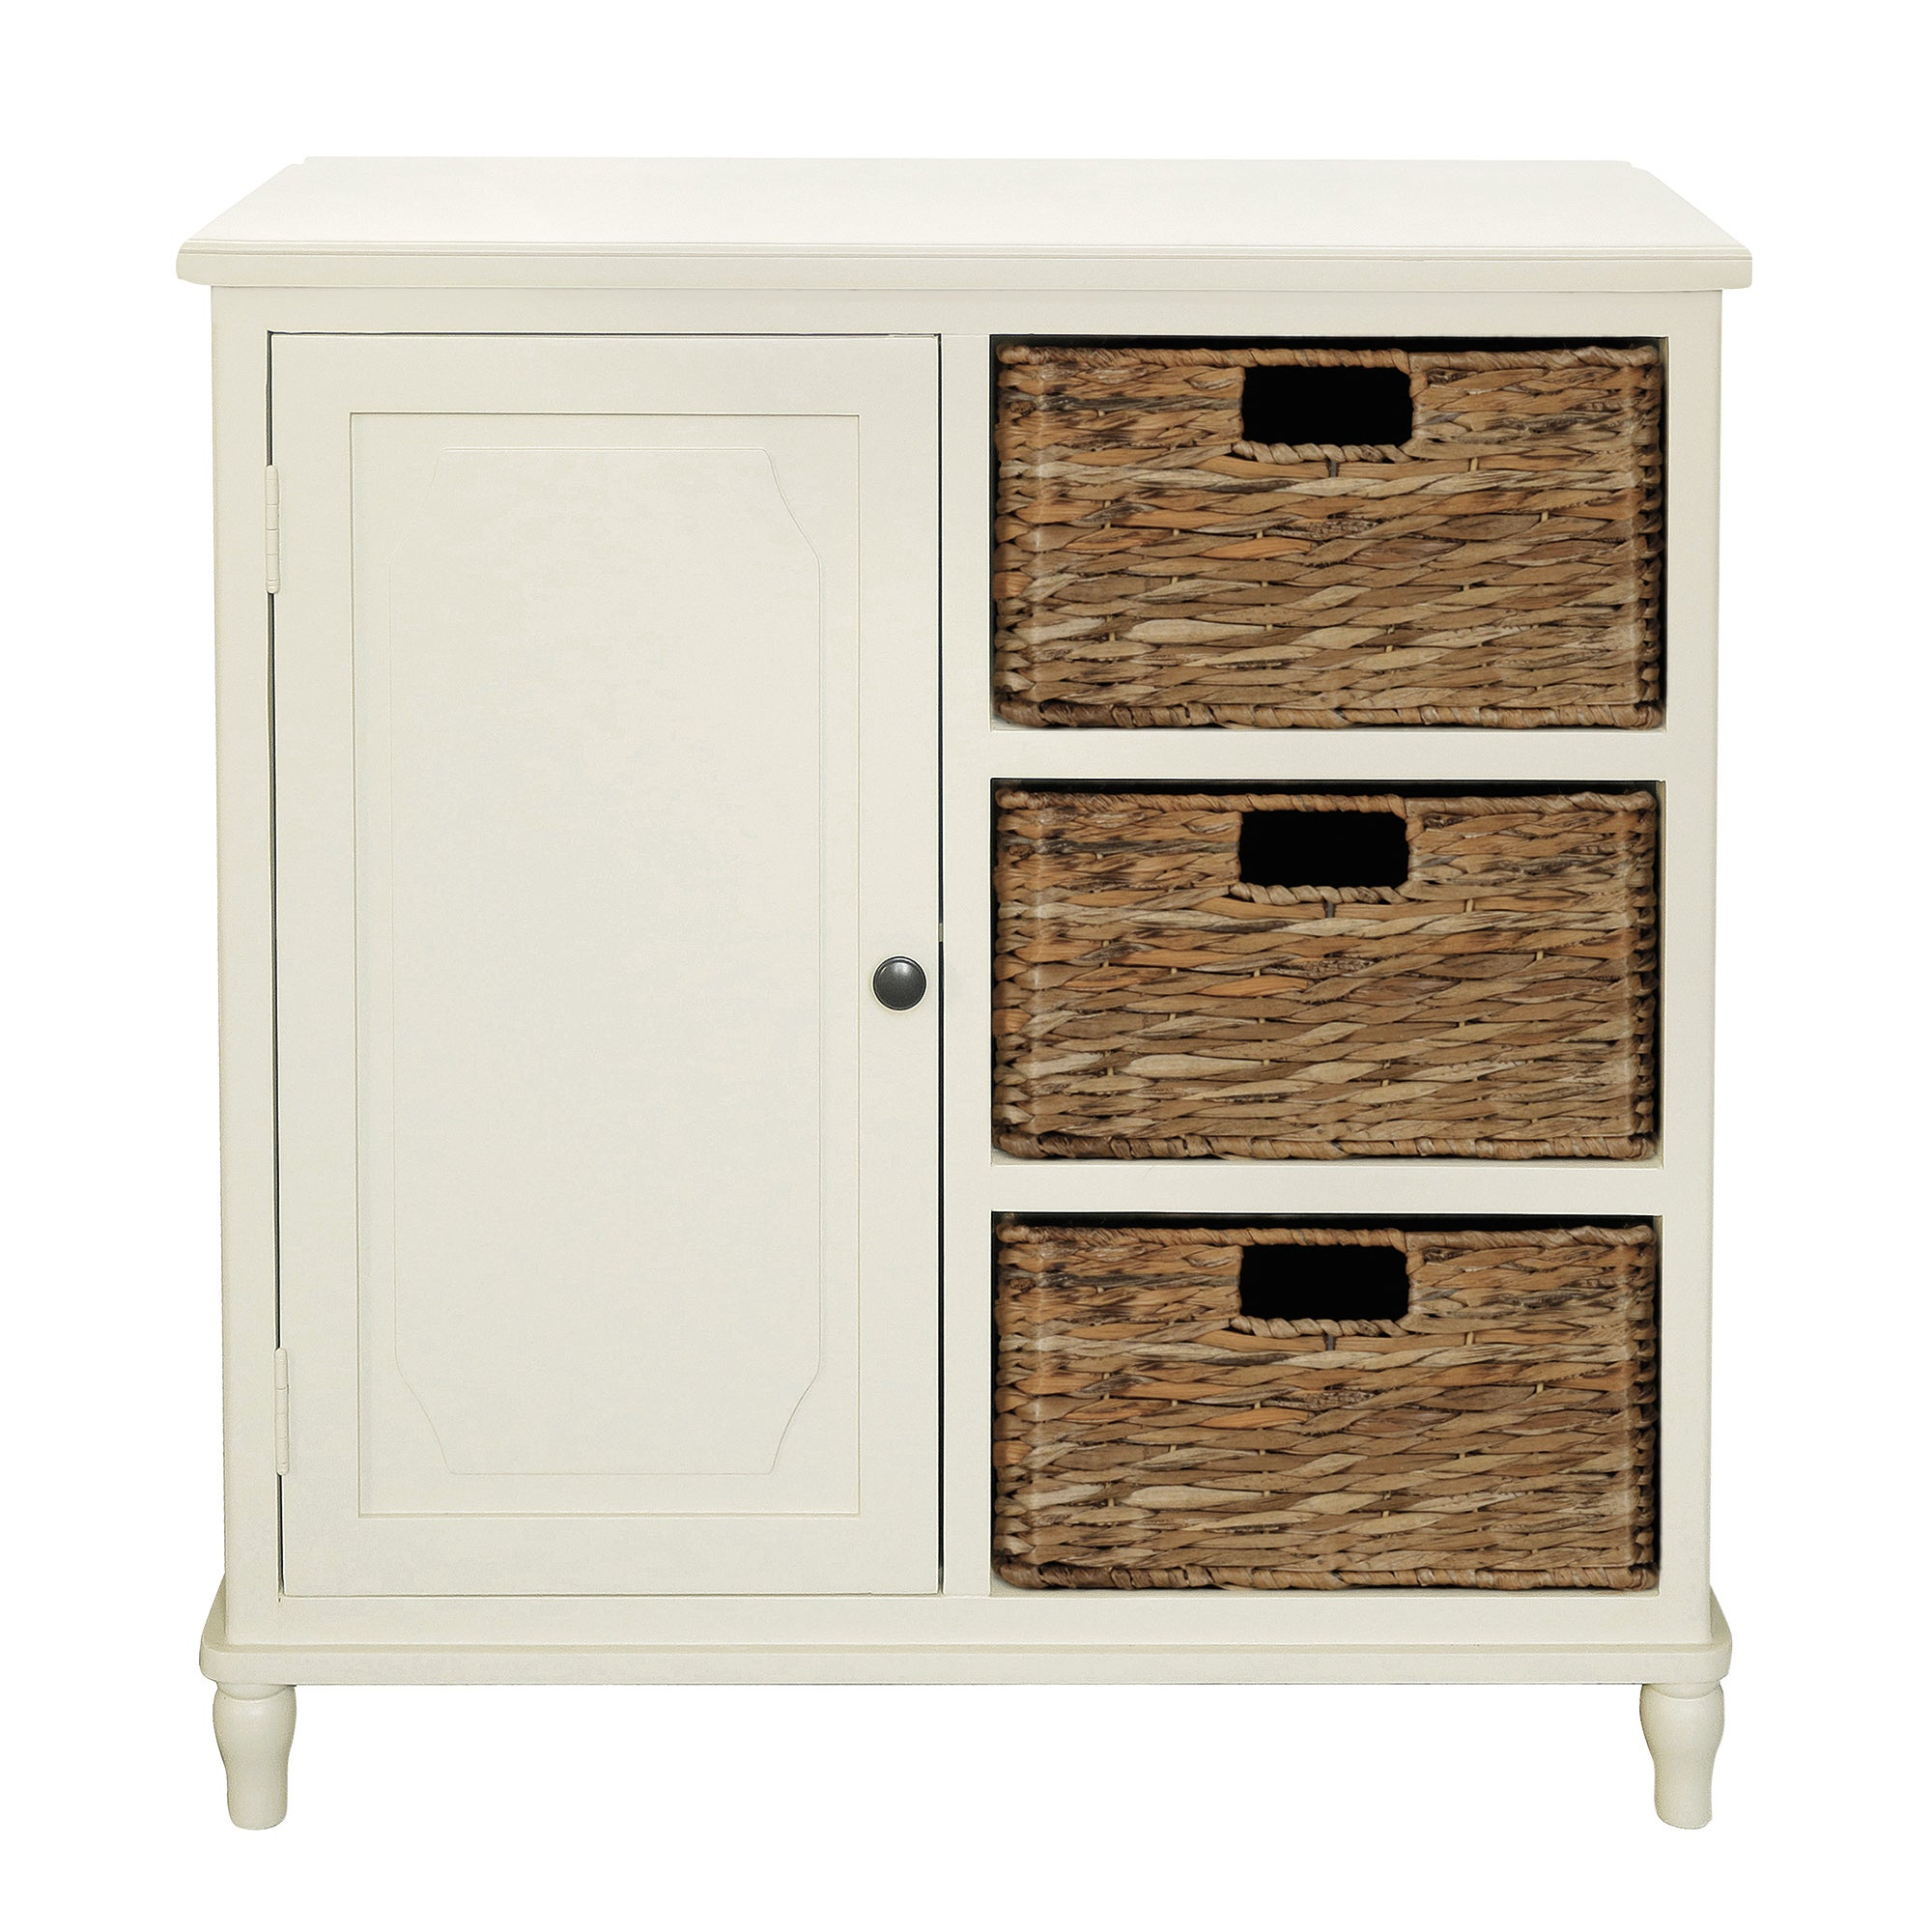 Devon Cream Mini Sideboard